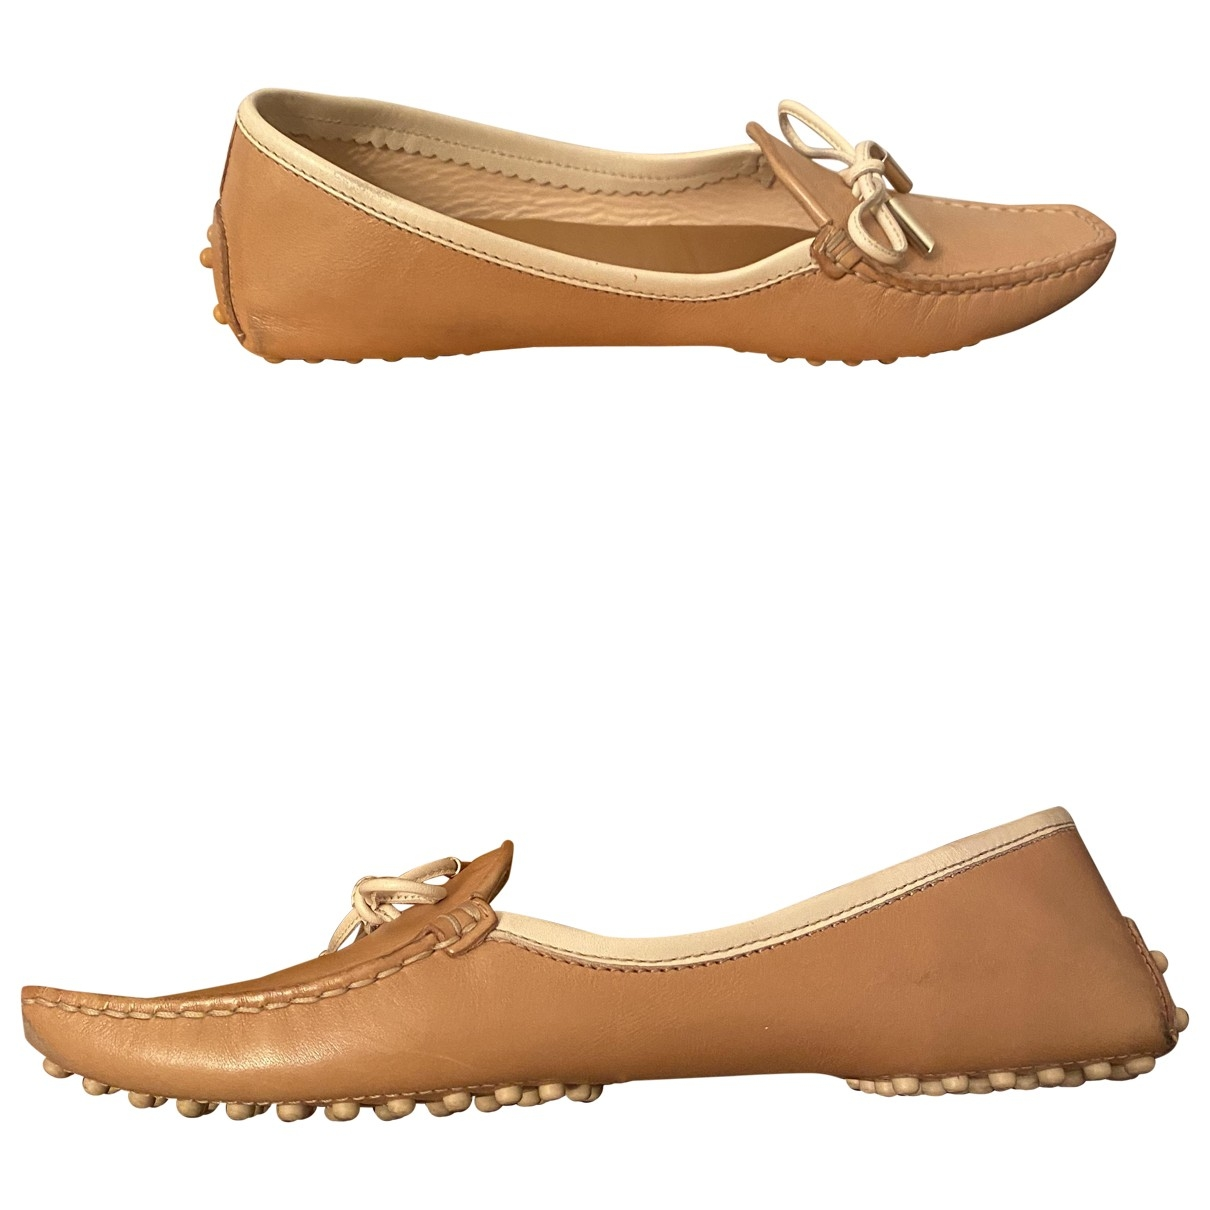 Tod's Gommino Beige Leather Flats for Women 36 EU